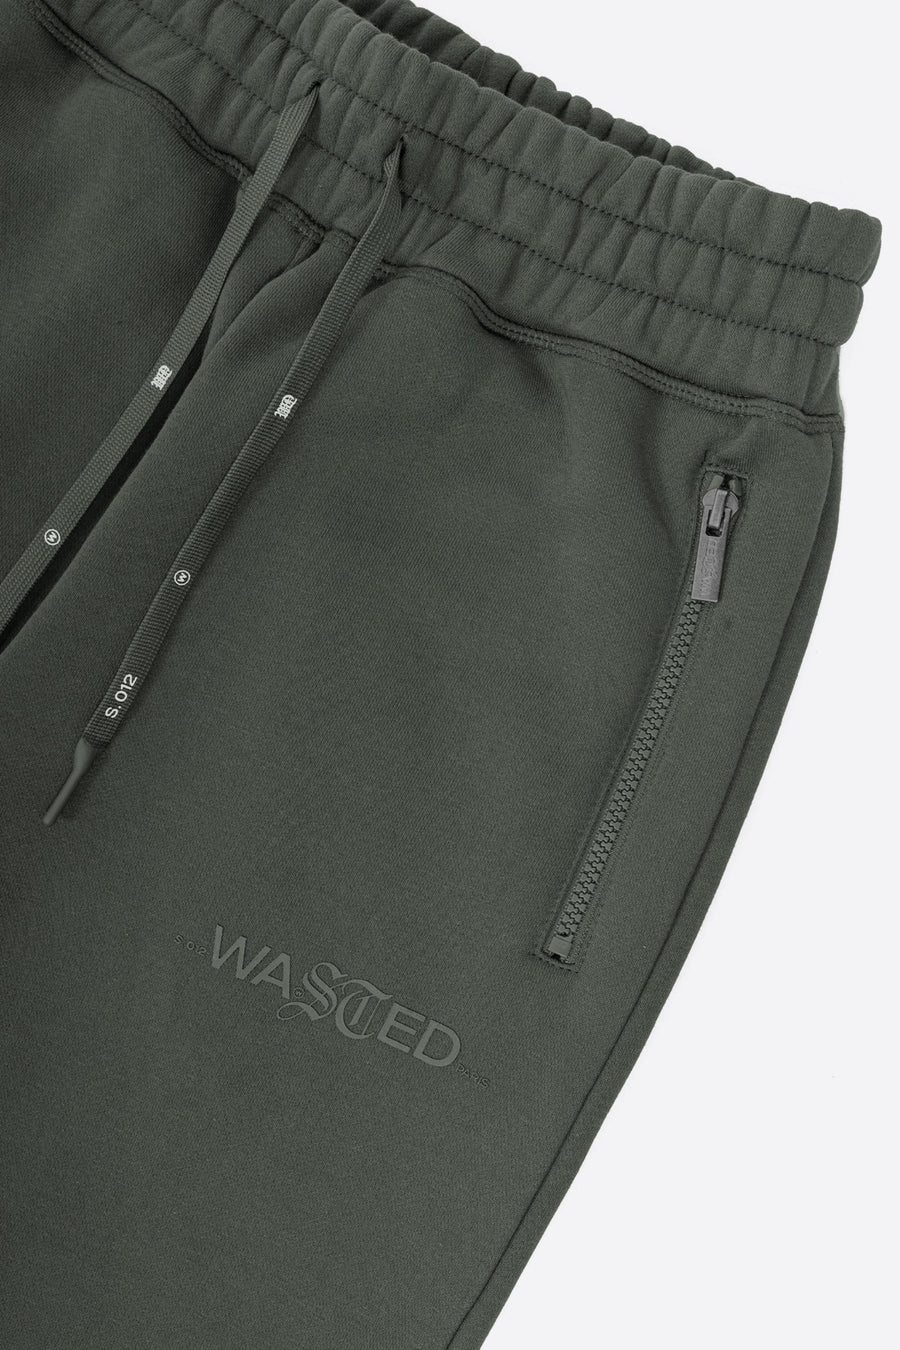 Jogging Essentiel Vert Ardoise - WASTED PARIS